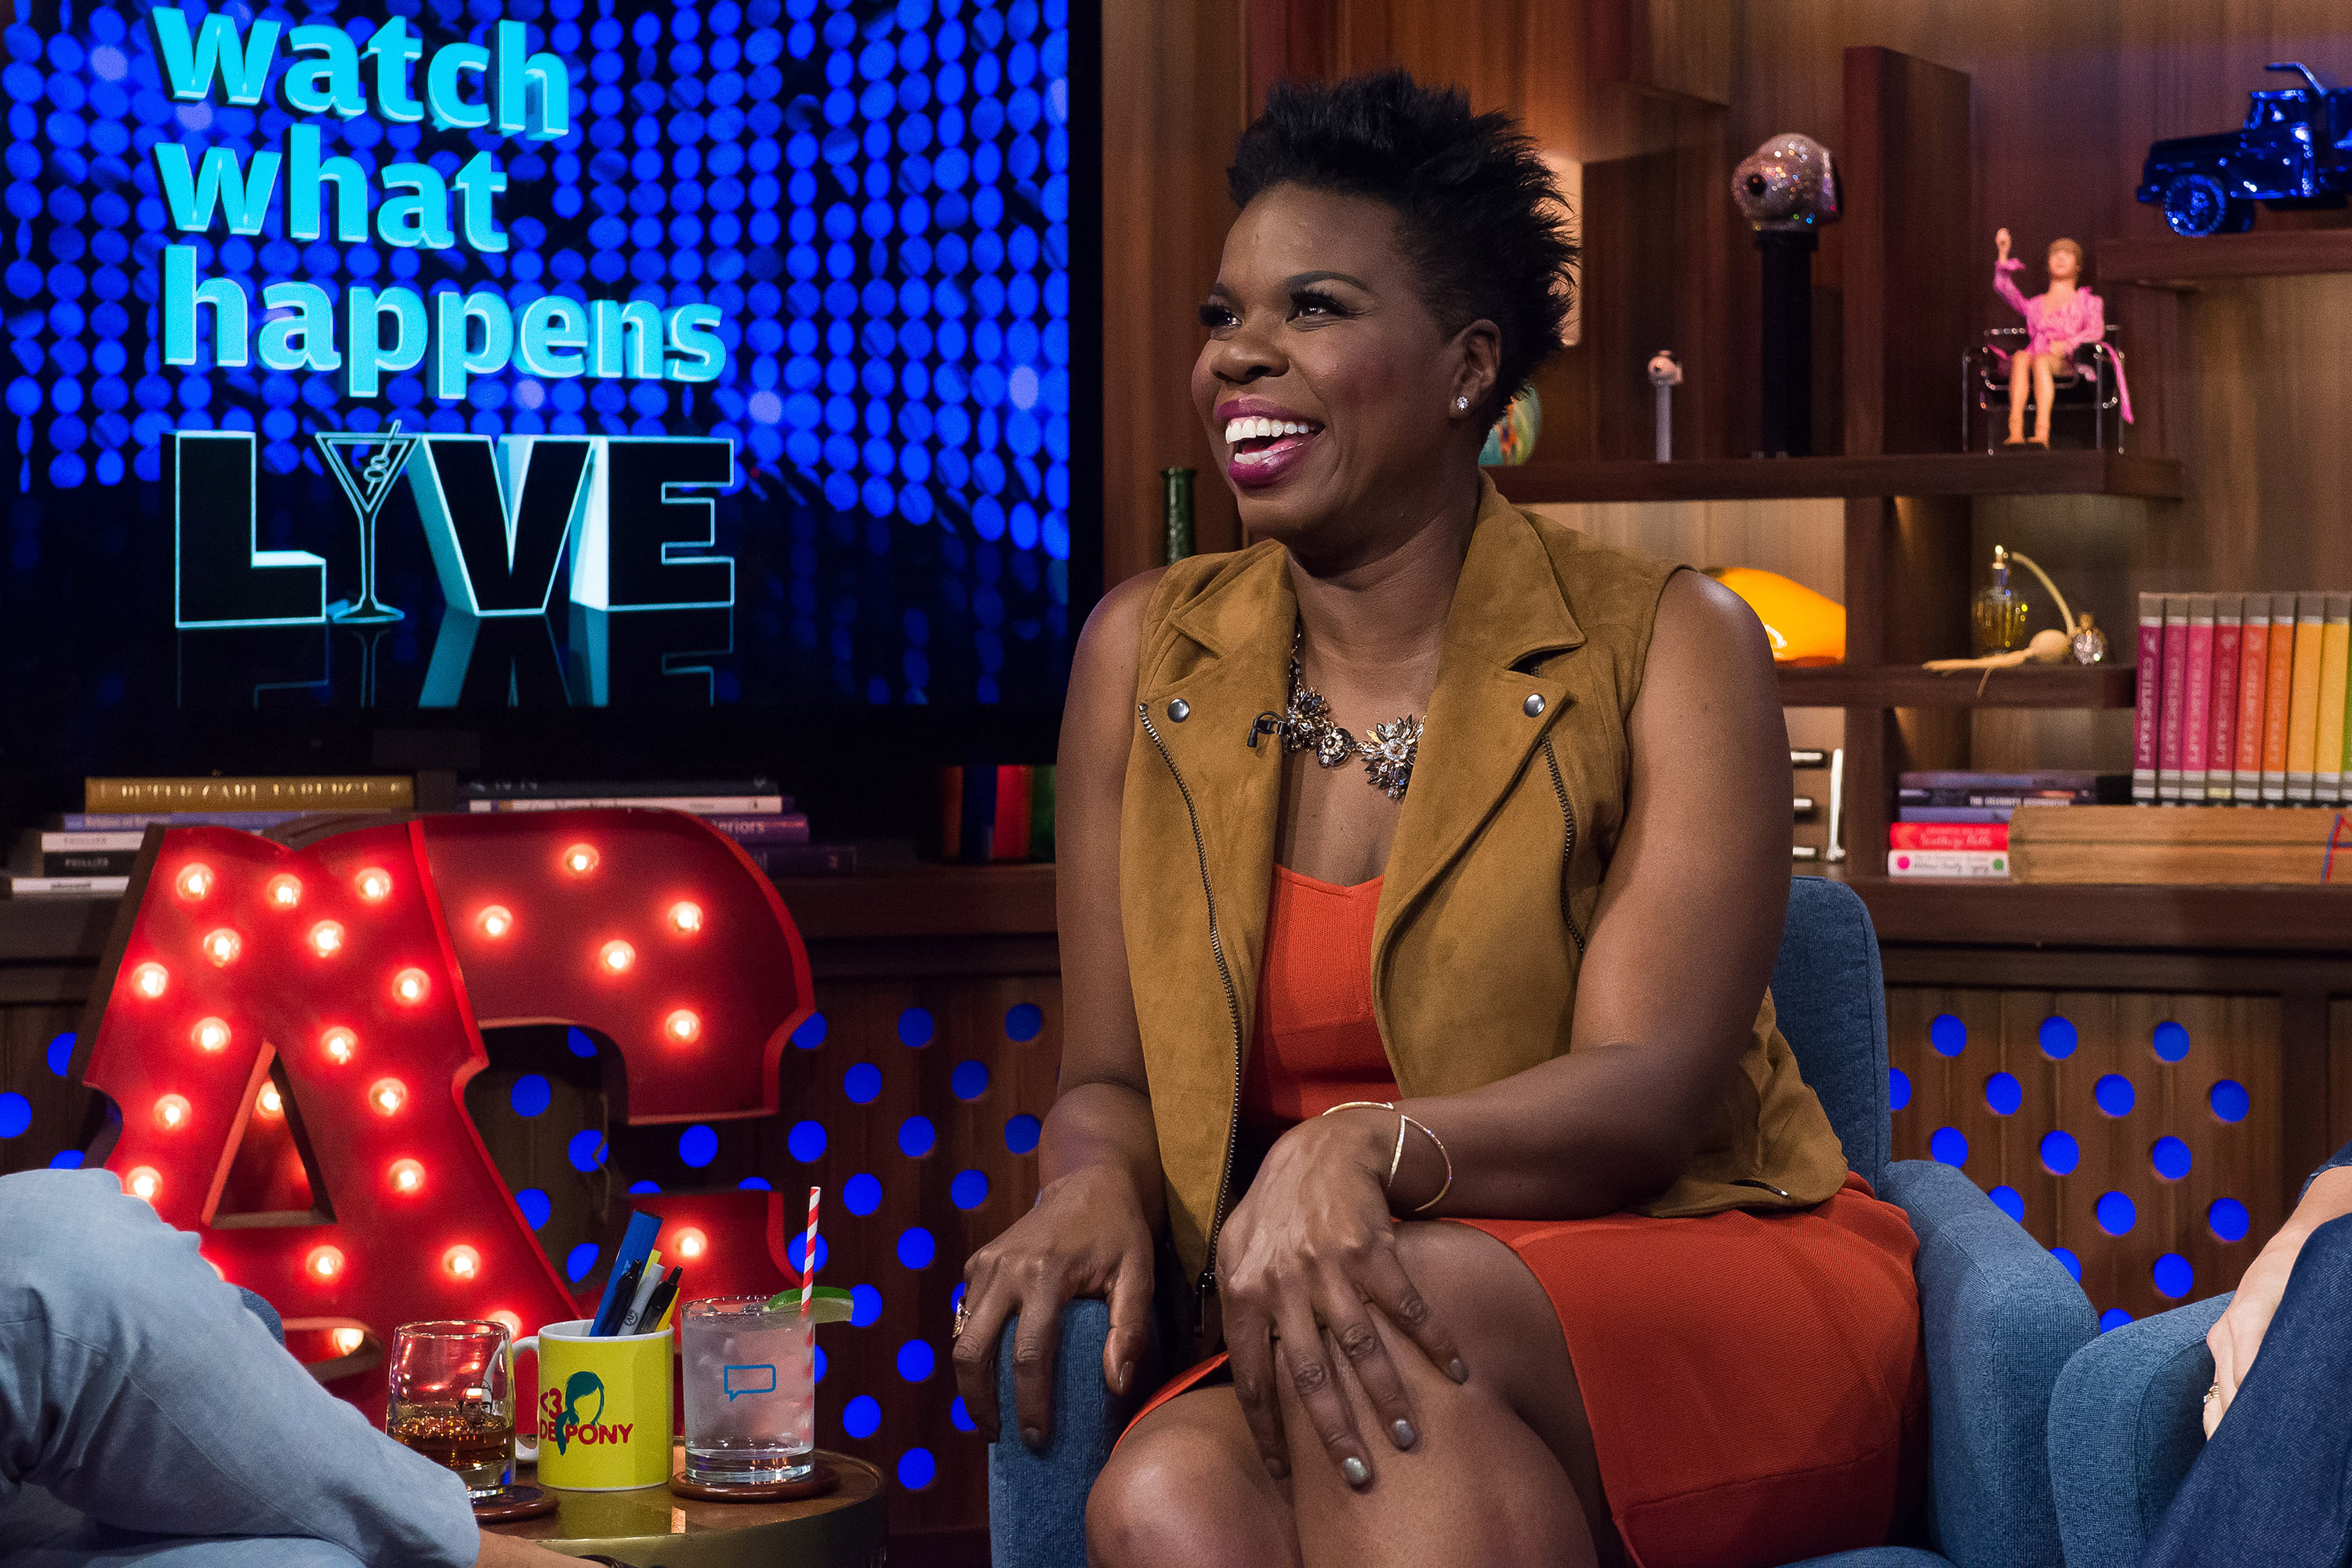 Watch What Happens Live - Season 13